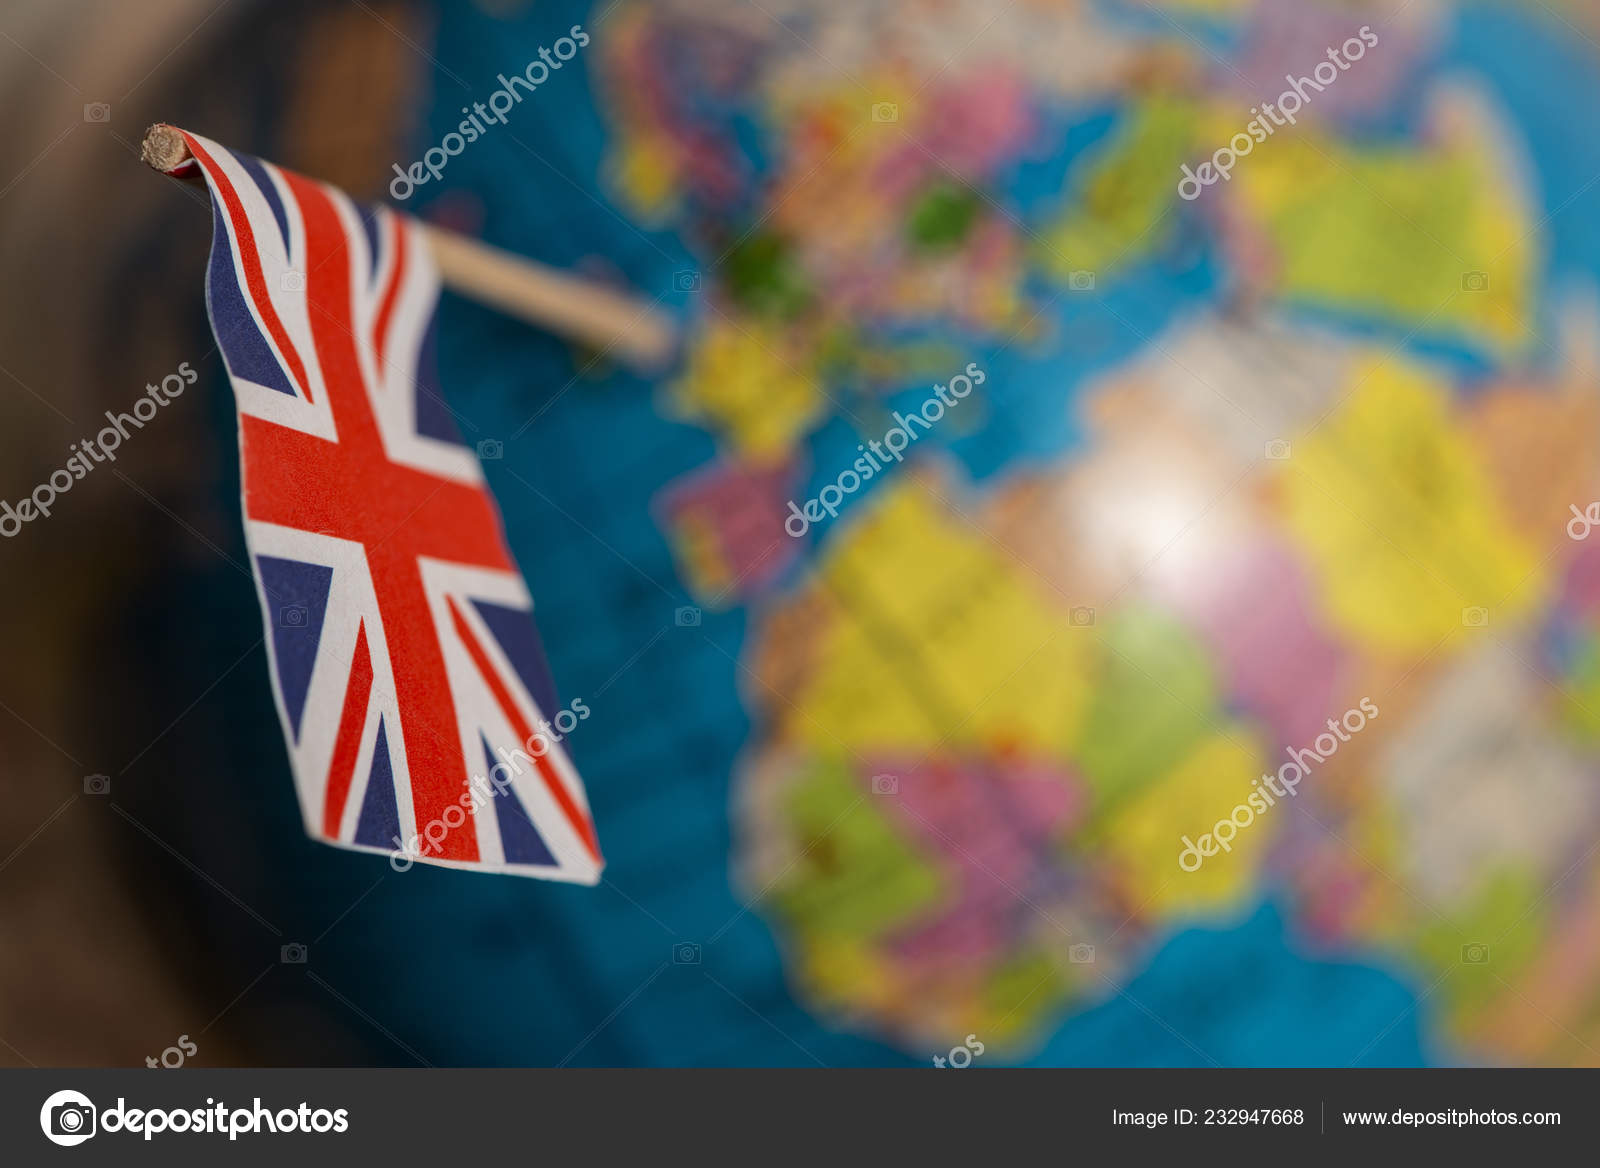 British Flag World Map Flag ed Globe Points United ... on israel in the world map, liberia in the world map, taiwan in the world map, croatia in the world map, jersey in the world map, costa rica in the world map, west indies in the world map, eiffel tower in the world map, india in the world map, bahrain in the world map, kiribati in the world map, abu dhabi in the world map, japan in the world map, bermuda in the world map, fiji in the world map, colombia in the world map, sudan in the world map, falkland islands in the world map, myanmar in the world map, dominican republic in the world map,